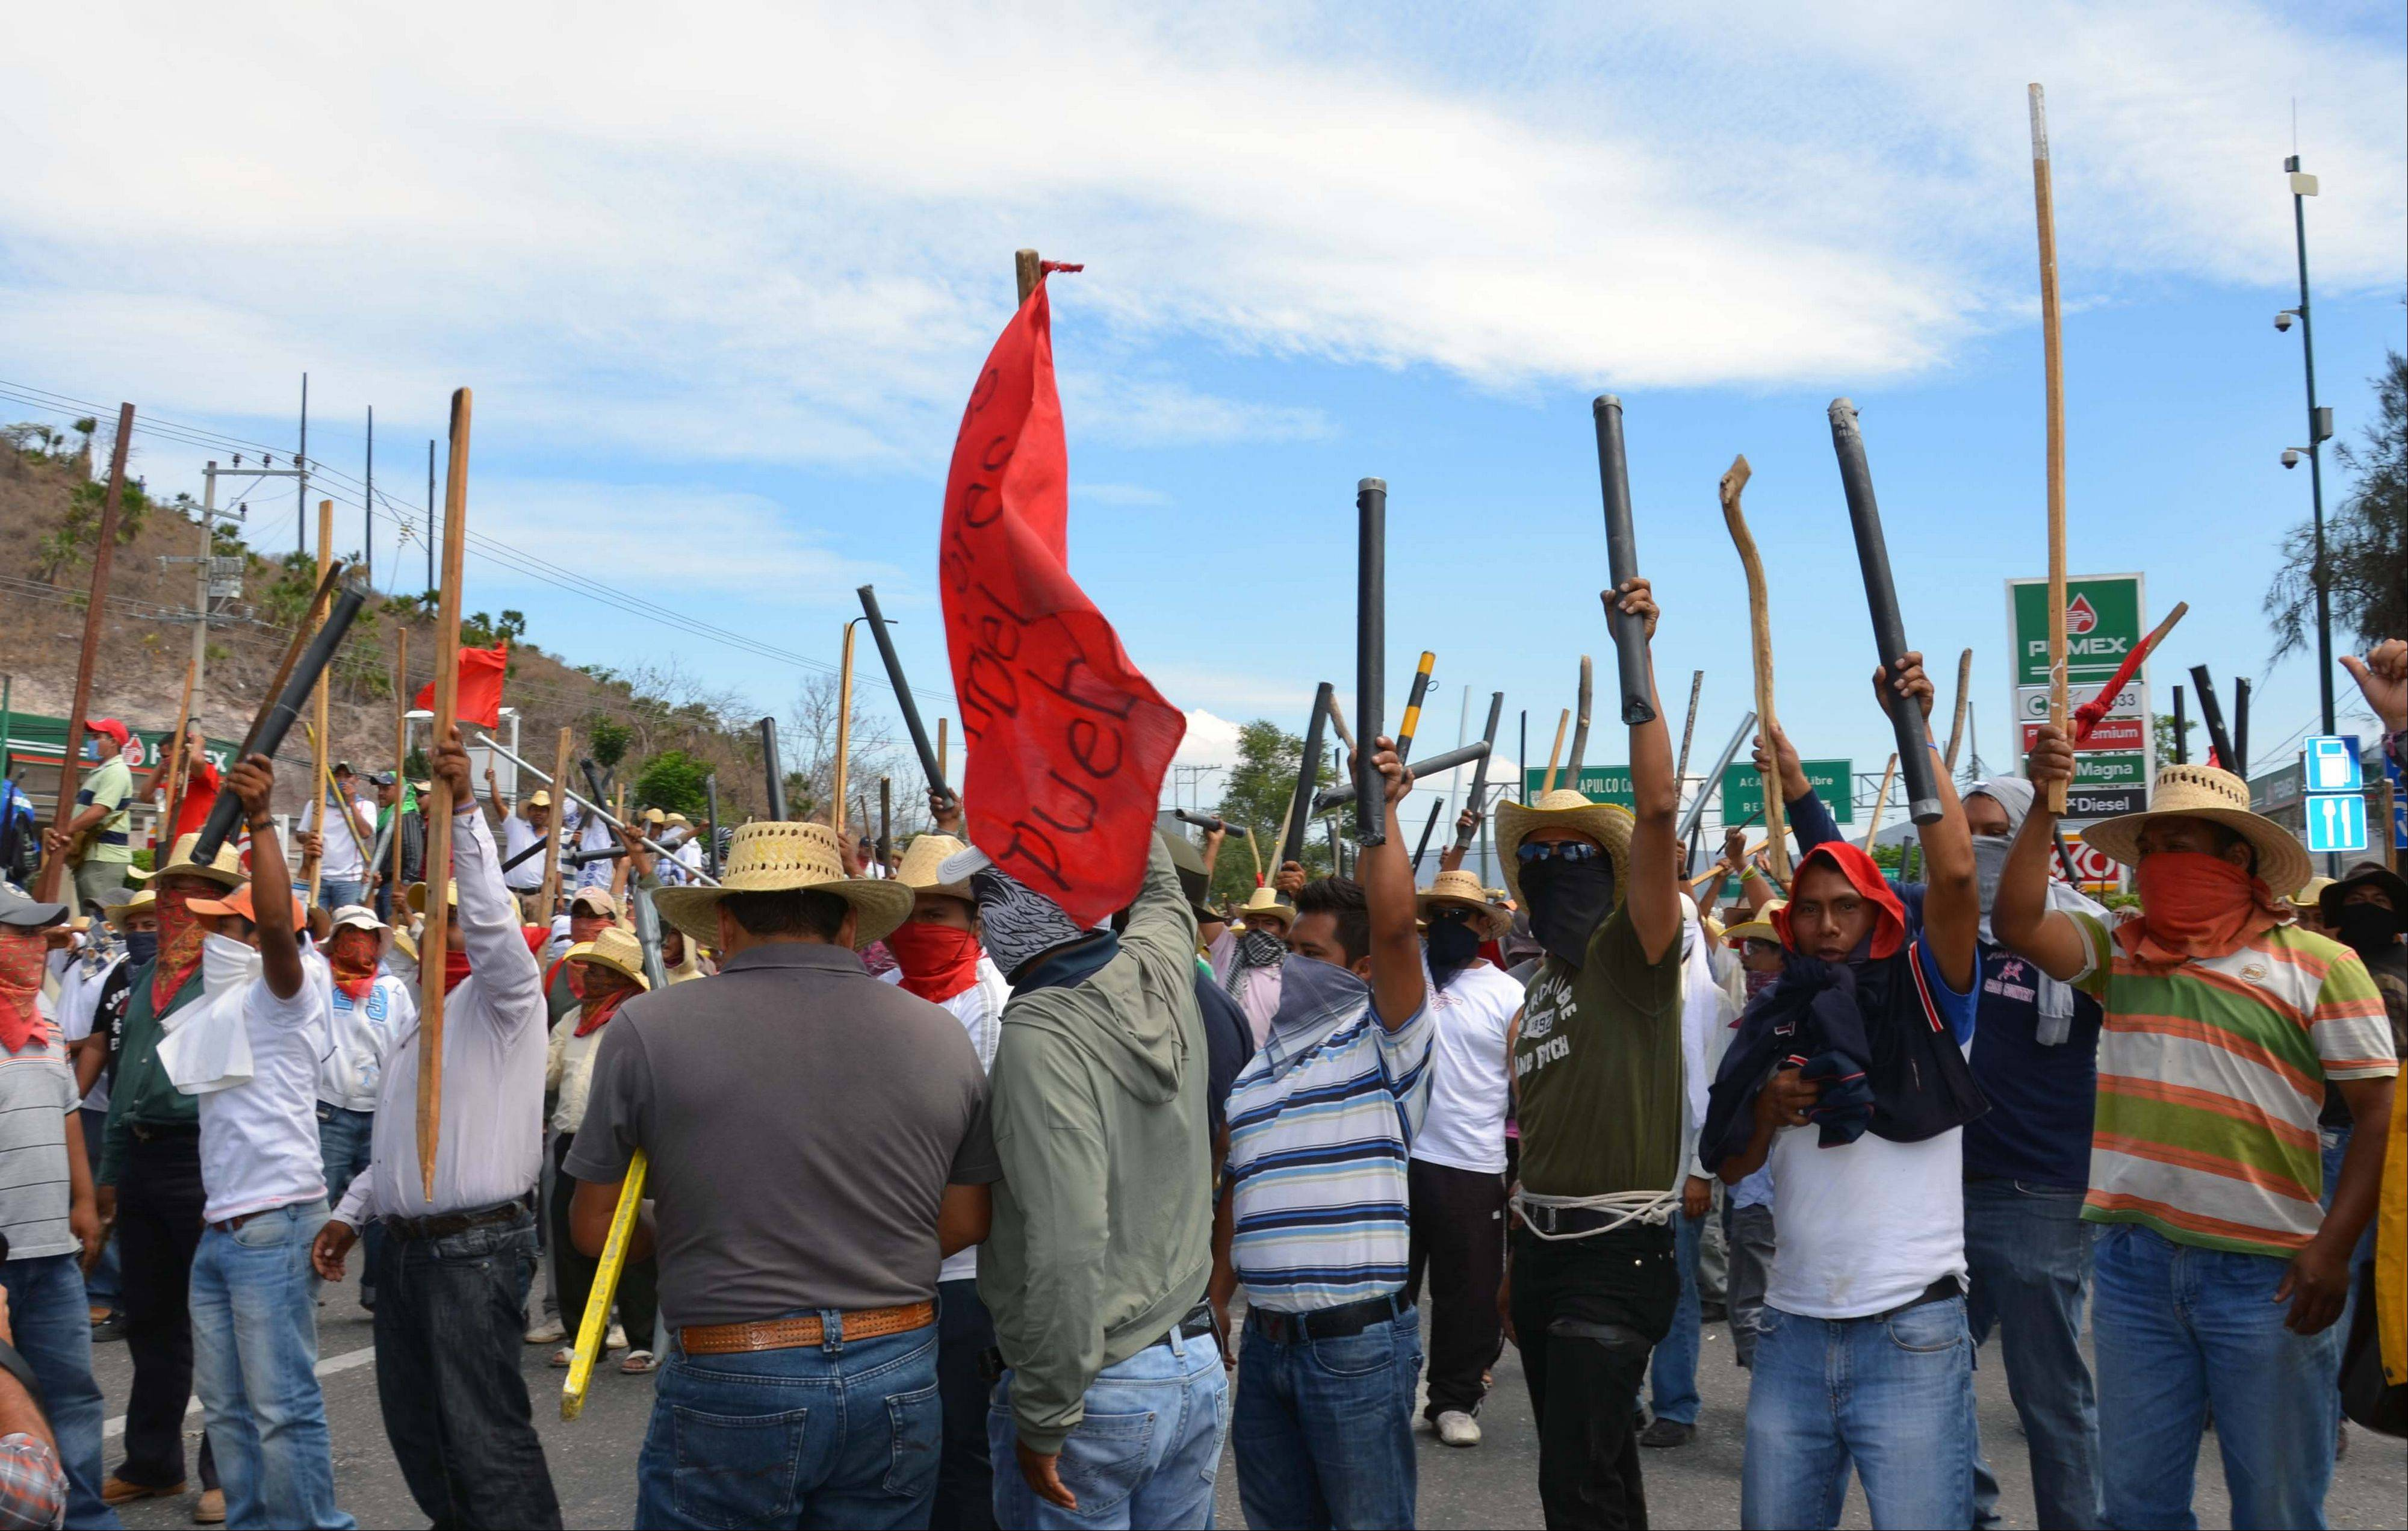 Teachers chant slogans holding up metal pipes and wooden sticks while blocking a major highway in Chilpancingo, Mexico, Thursday. The teachers, who are protesting an educational reform that will submit them to evaluation and loosen union control over hiring and firing, left peacefully after negotiating with police.